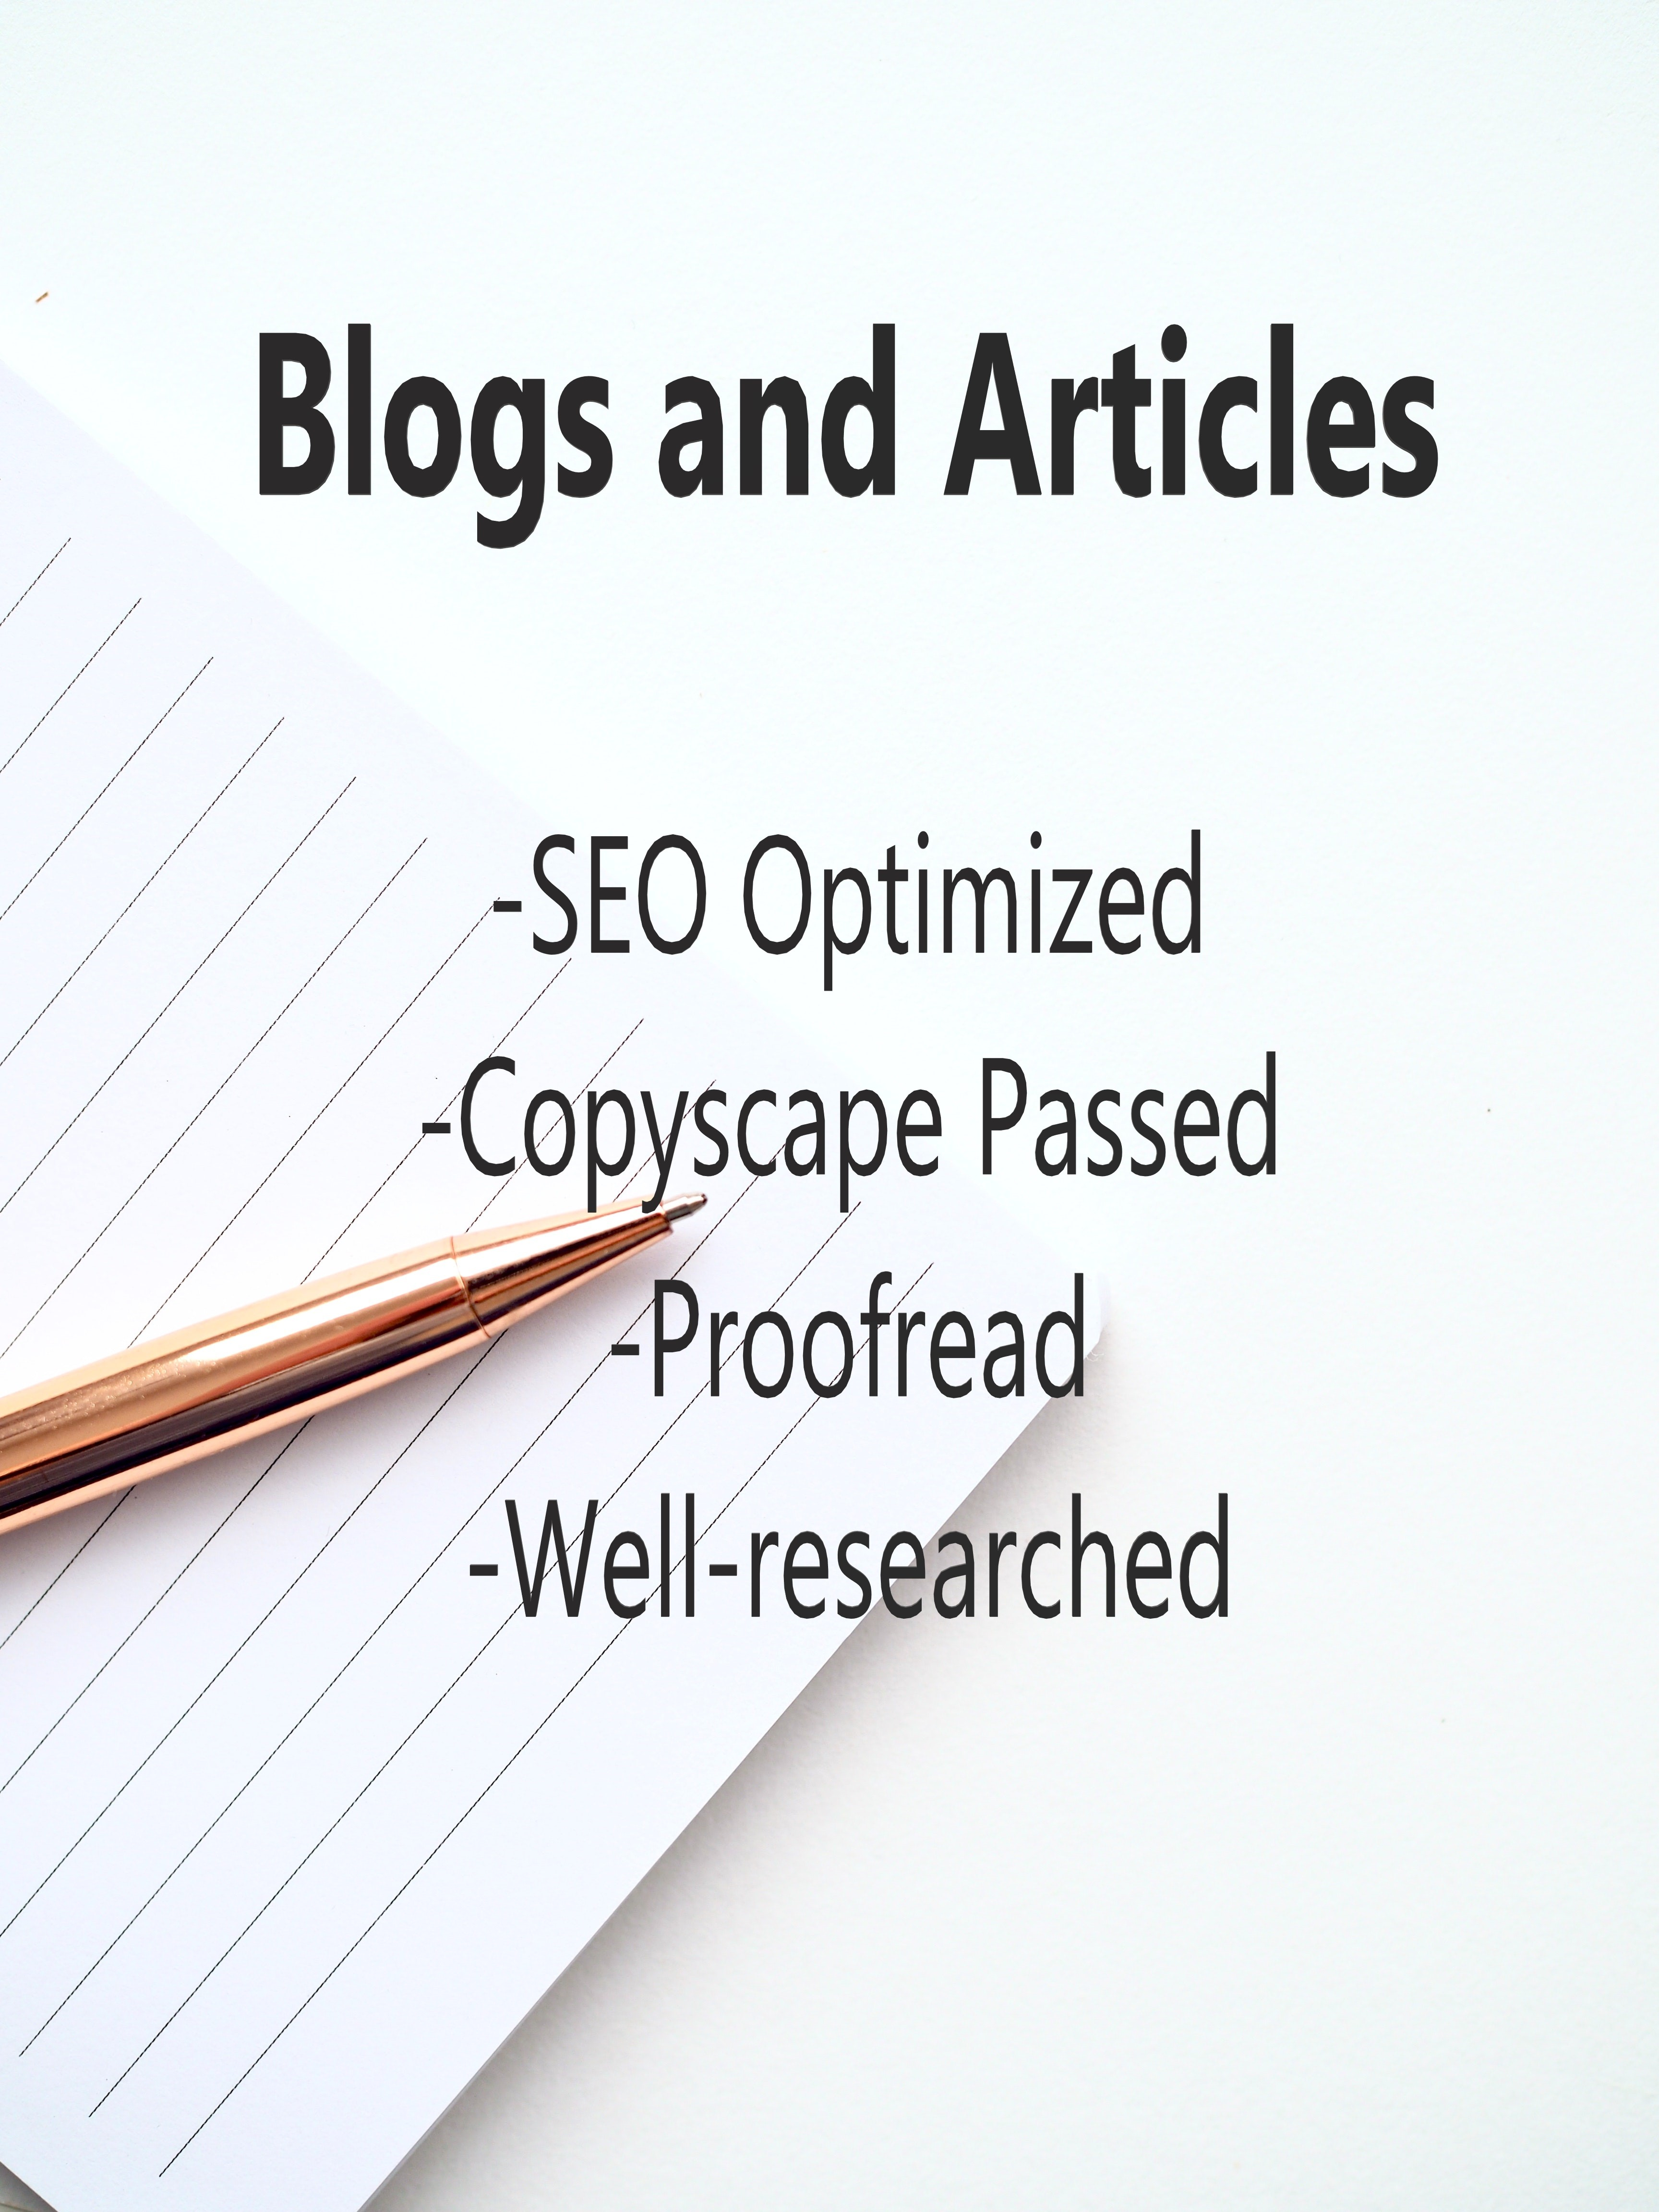 I will write a 1000-word SEO optimized article